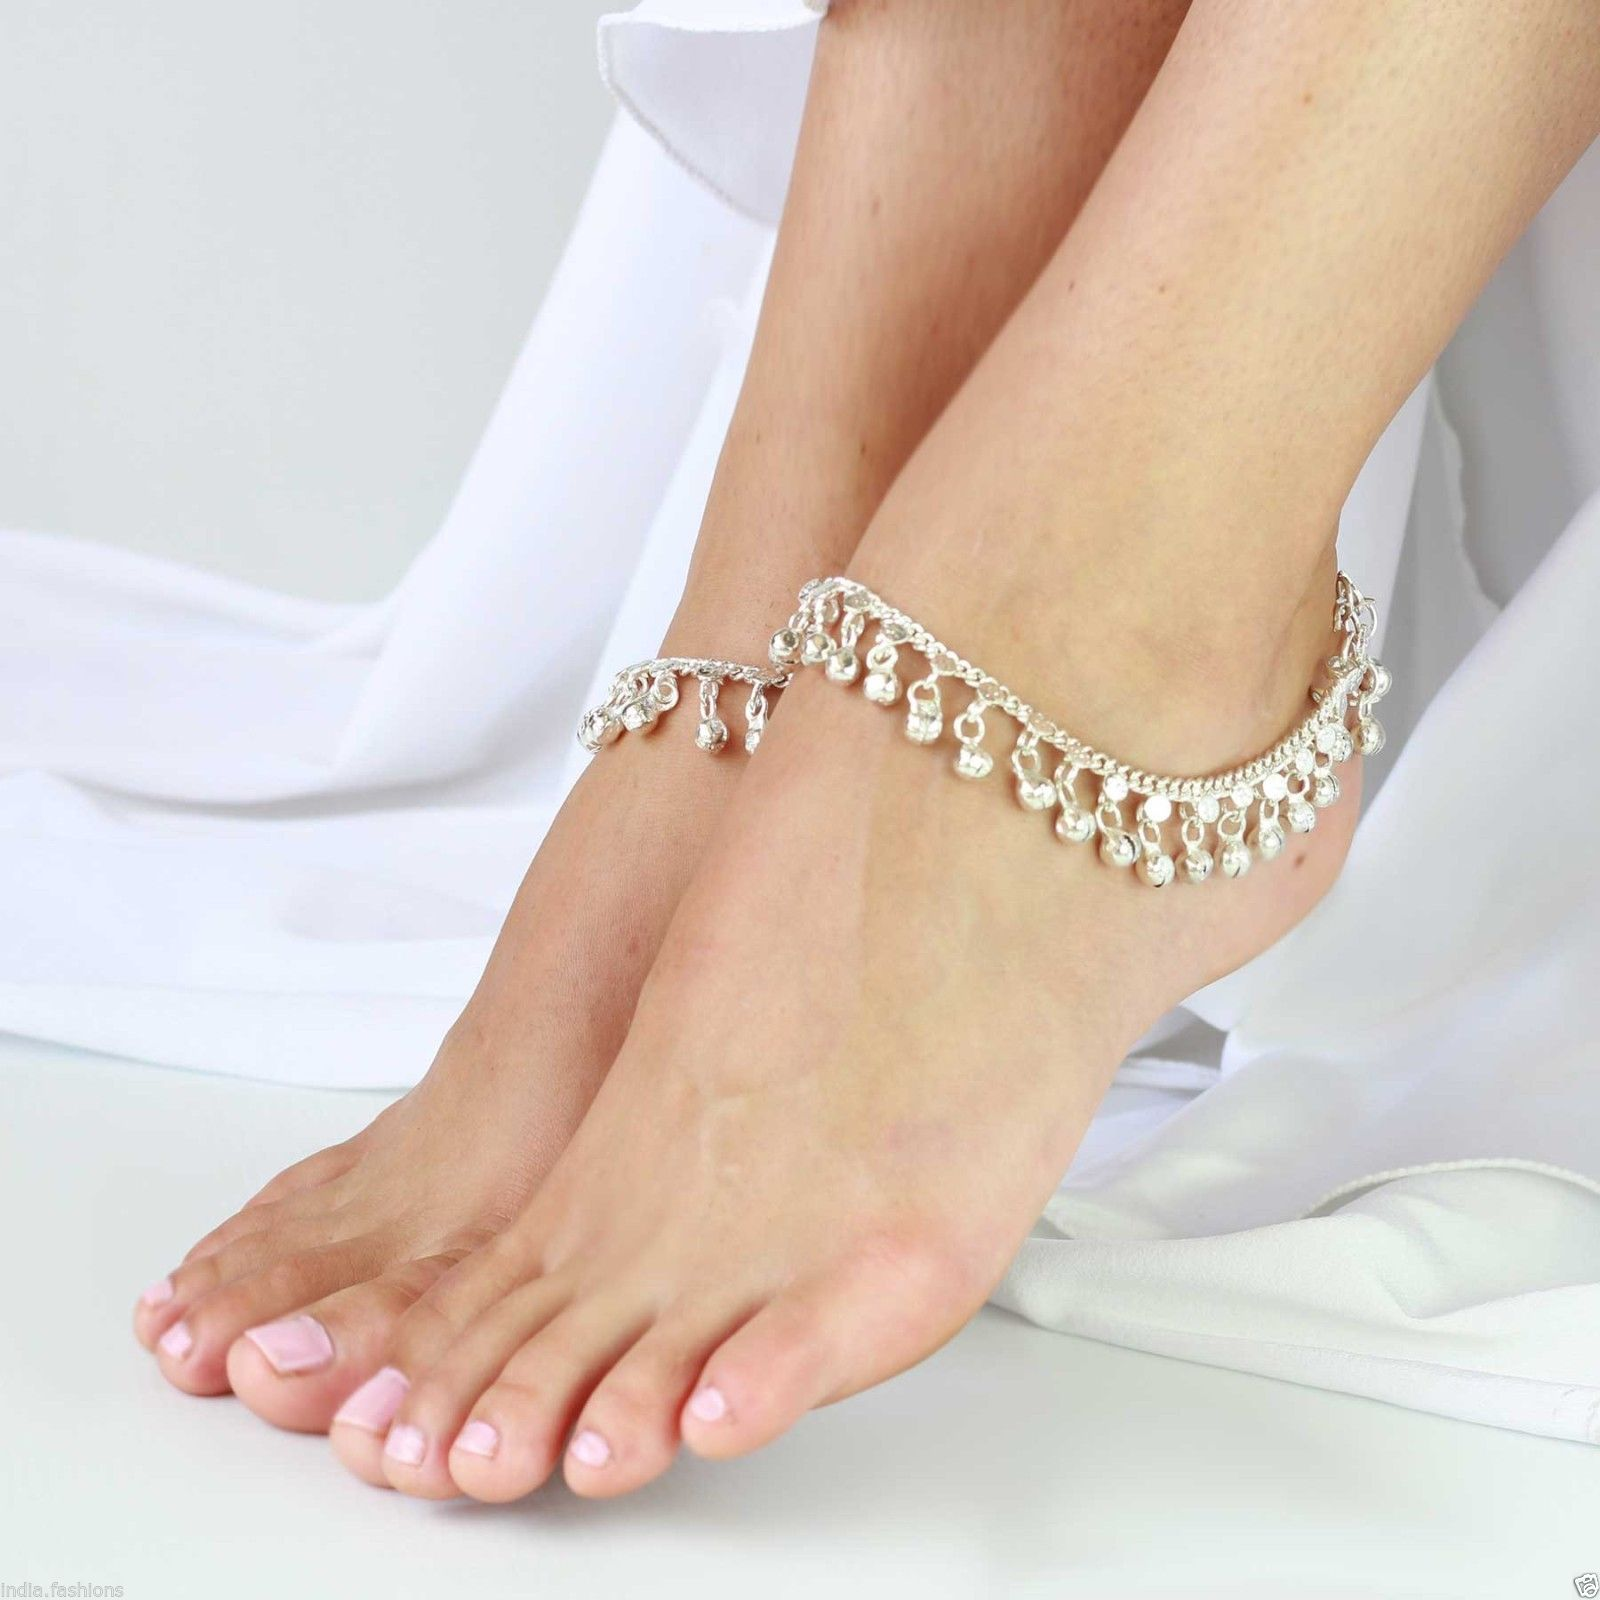 rs chain an online wholesale custom anklet jewellery shop buy anklets women adjustable fashion s